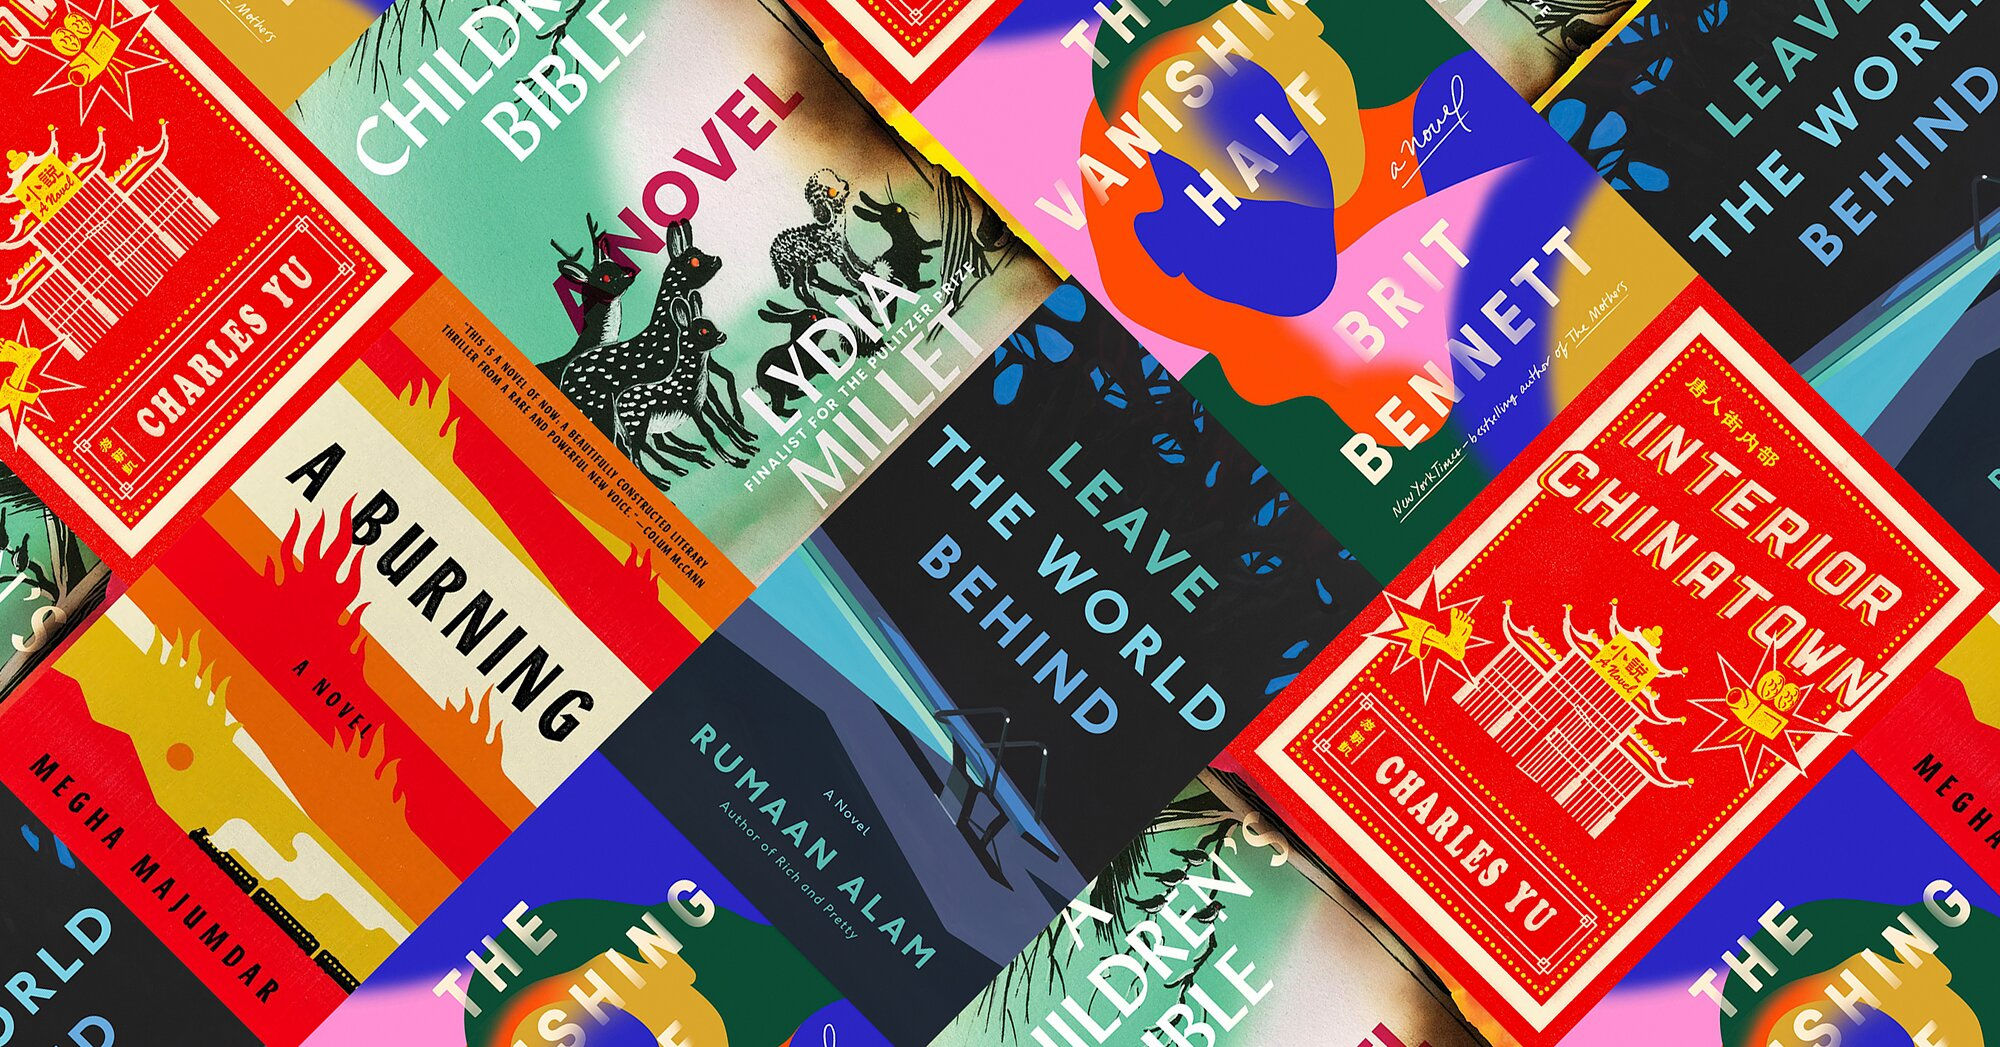 See the 2020 National Book Awards Longlist for Fiction